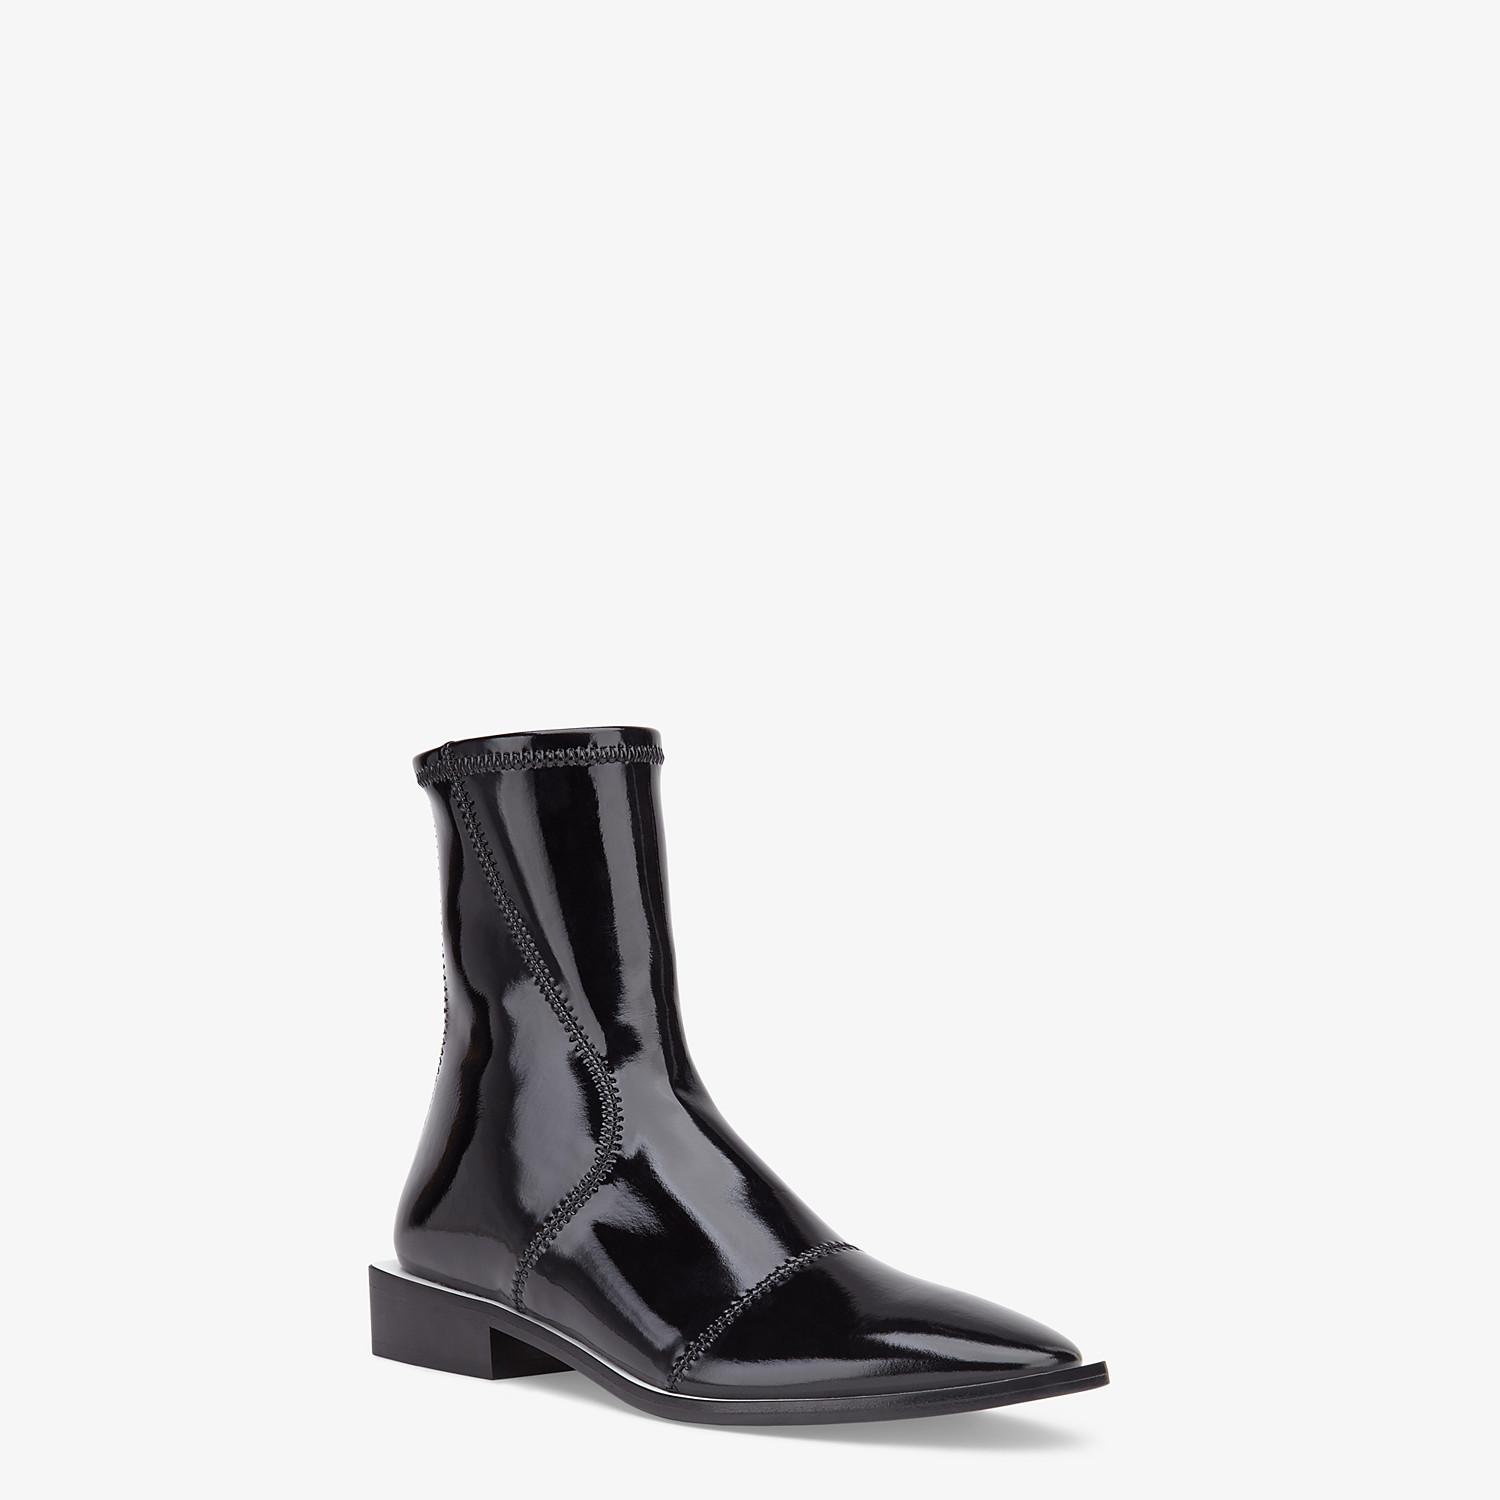 FENDI FFRAME - Glossy black neoprene low ankle boots - view 2 detail